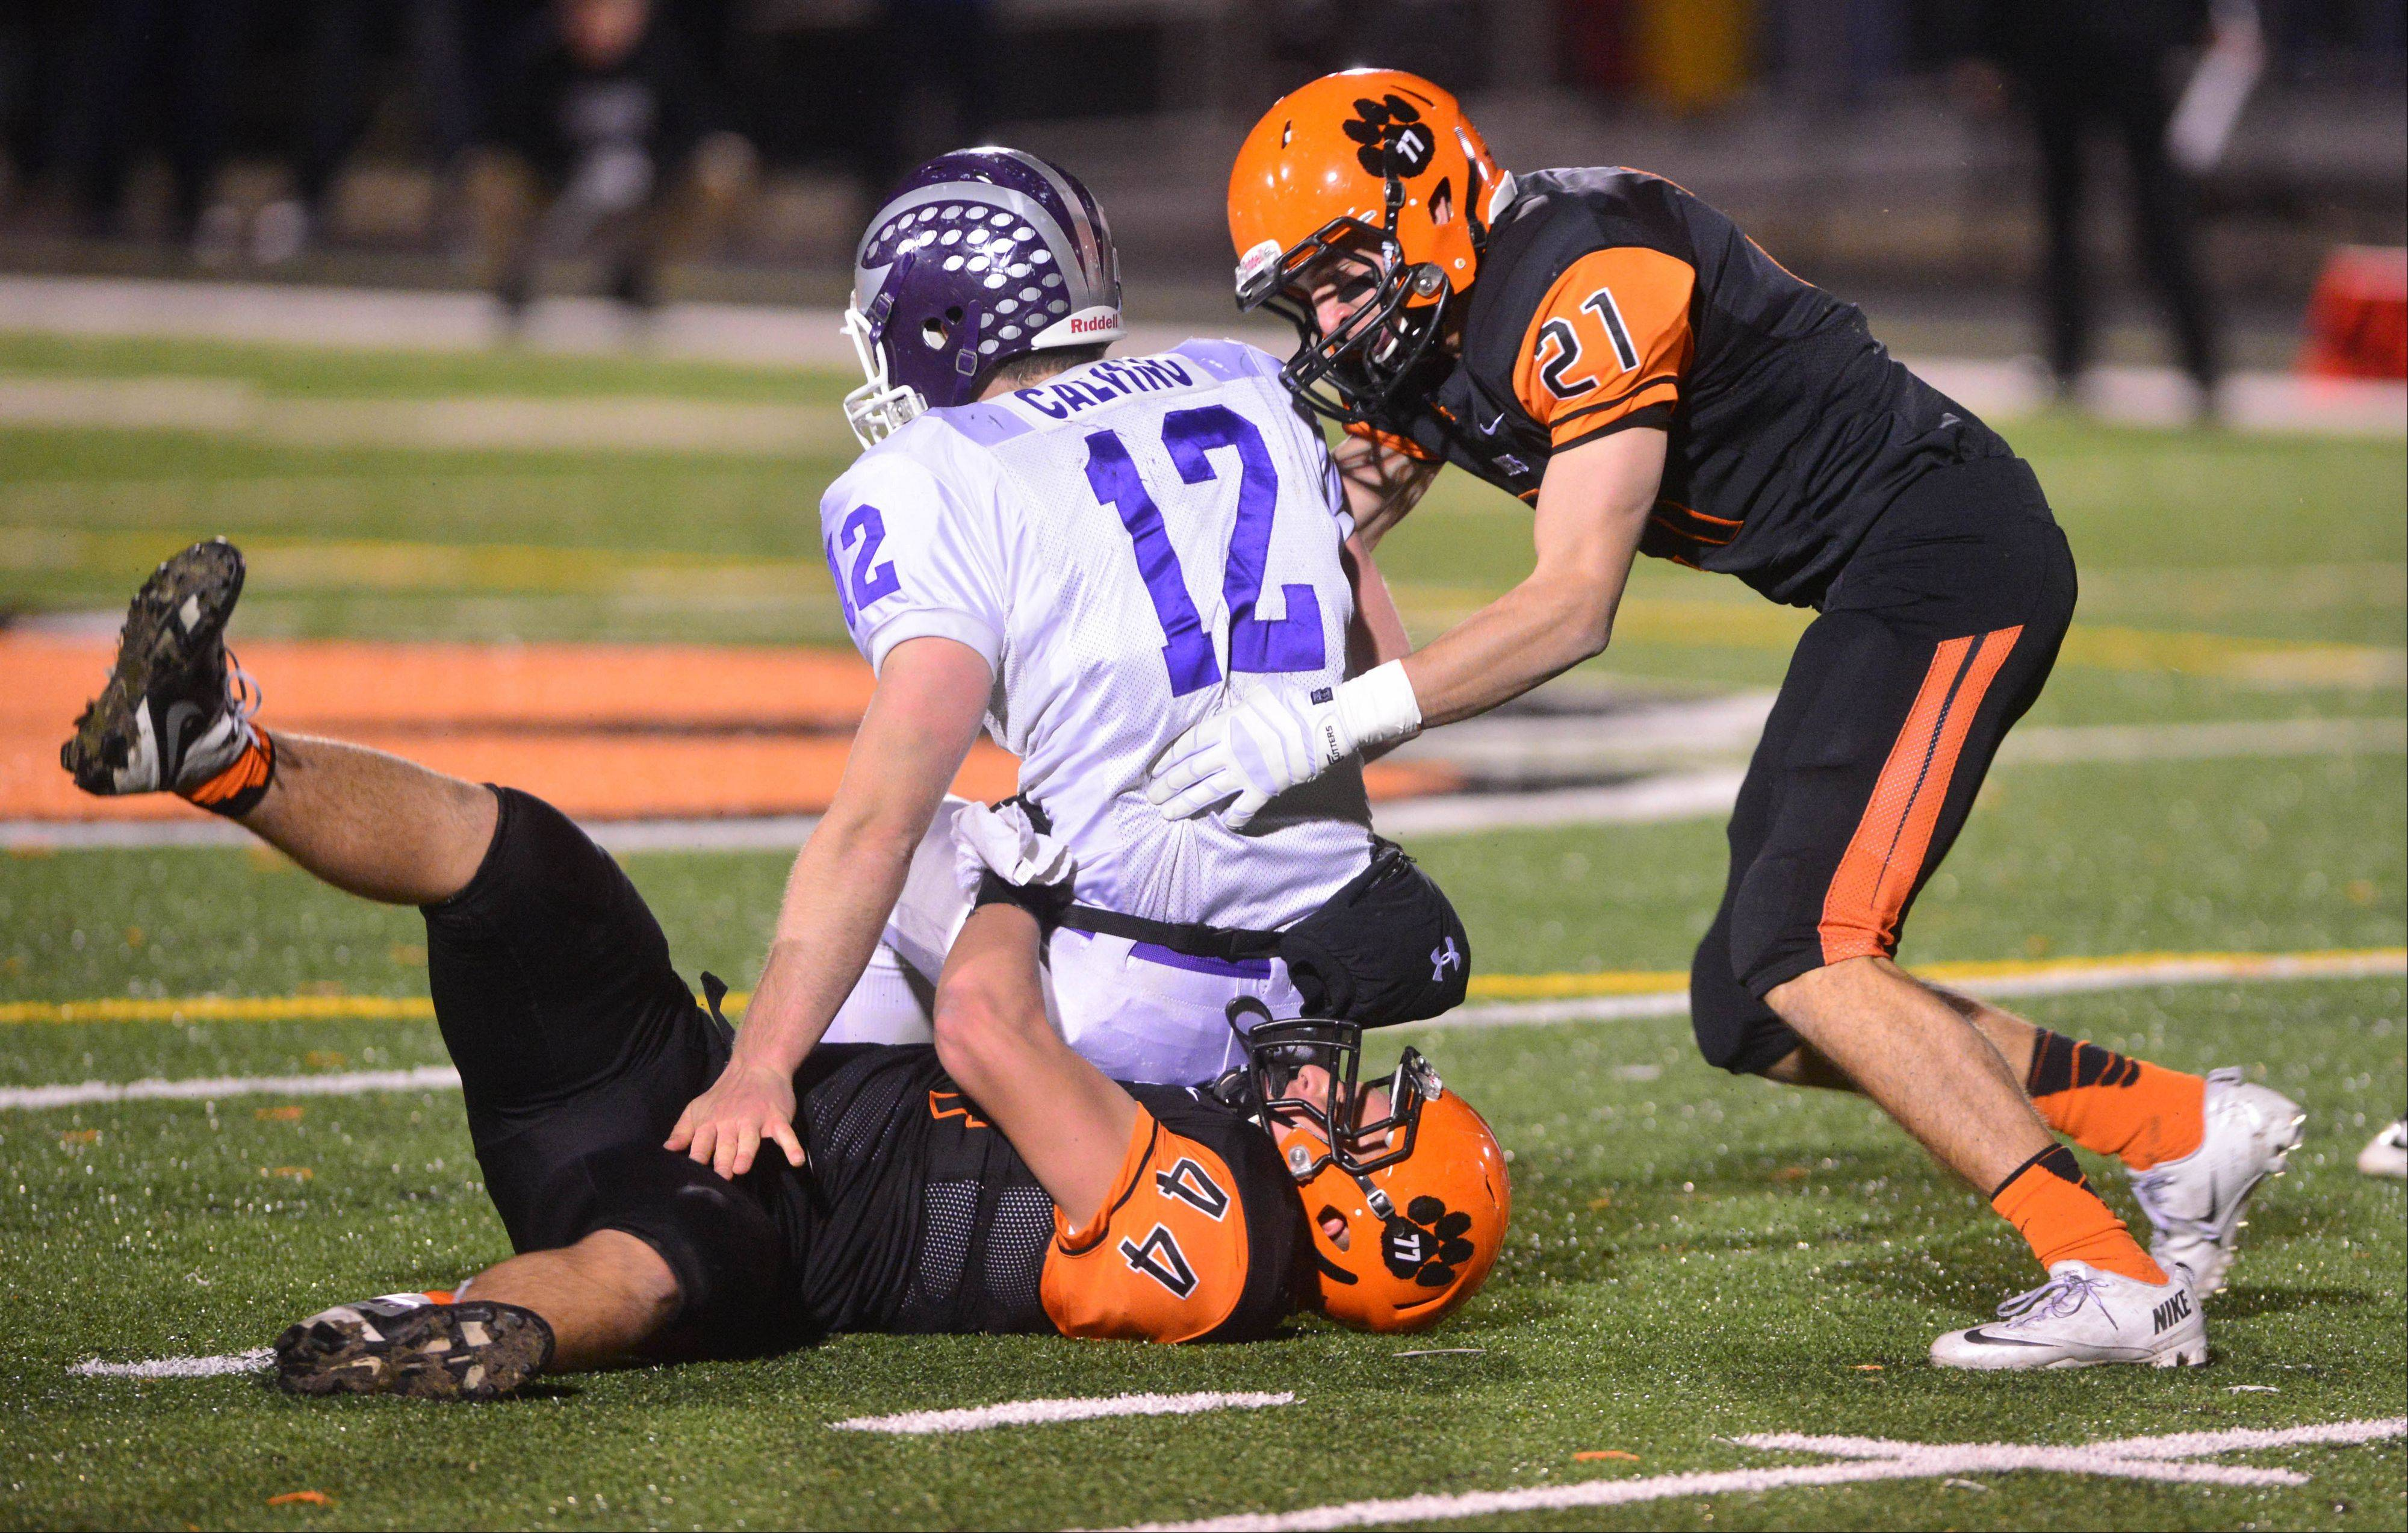 Sebastian Calvino of Downers Grove North is pulled down by defenders Joseph Machalek,left, and Jake Schultz of Wheaton Warrenville South .